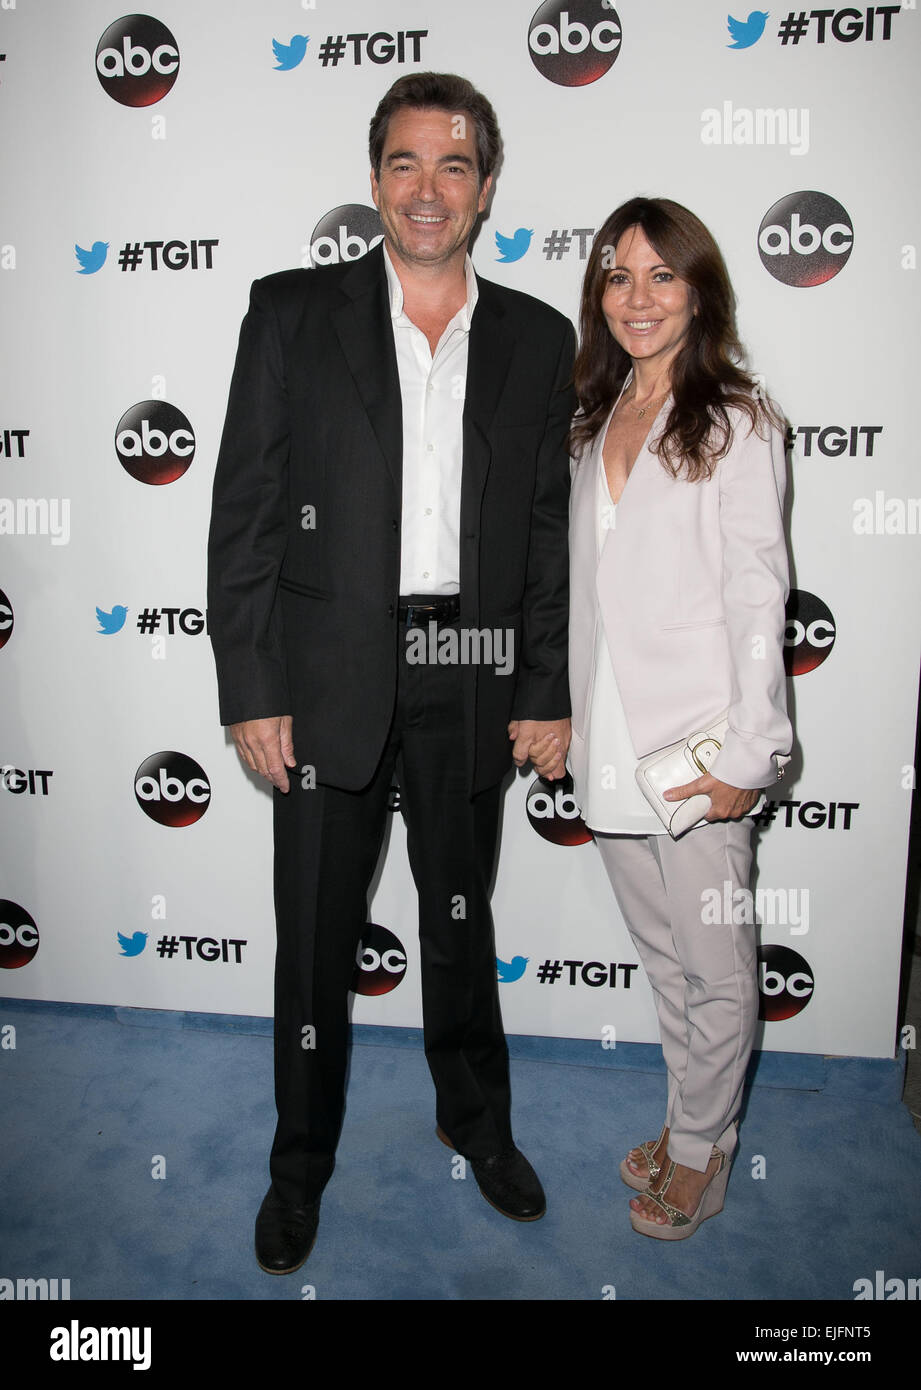 TGIT Premiere Event for Grey\'s Anatomy, Scandal, How To Get Away ...